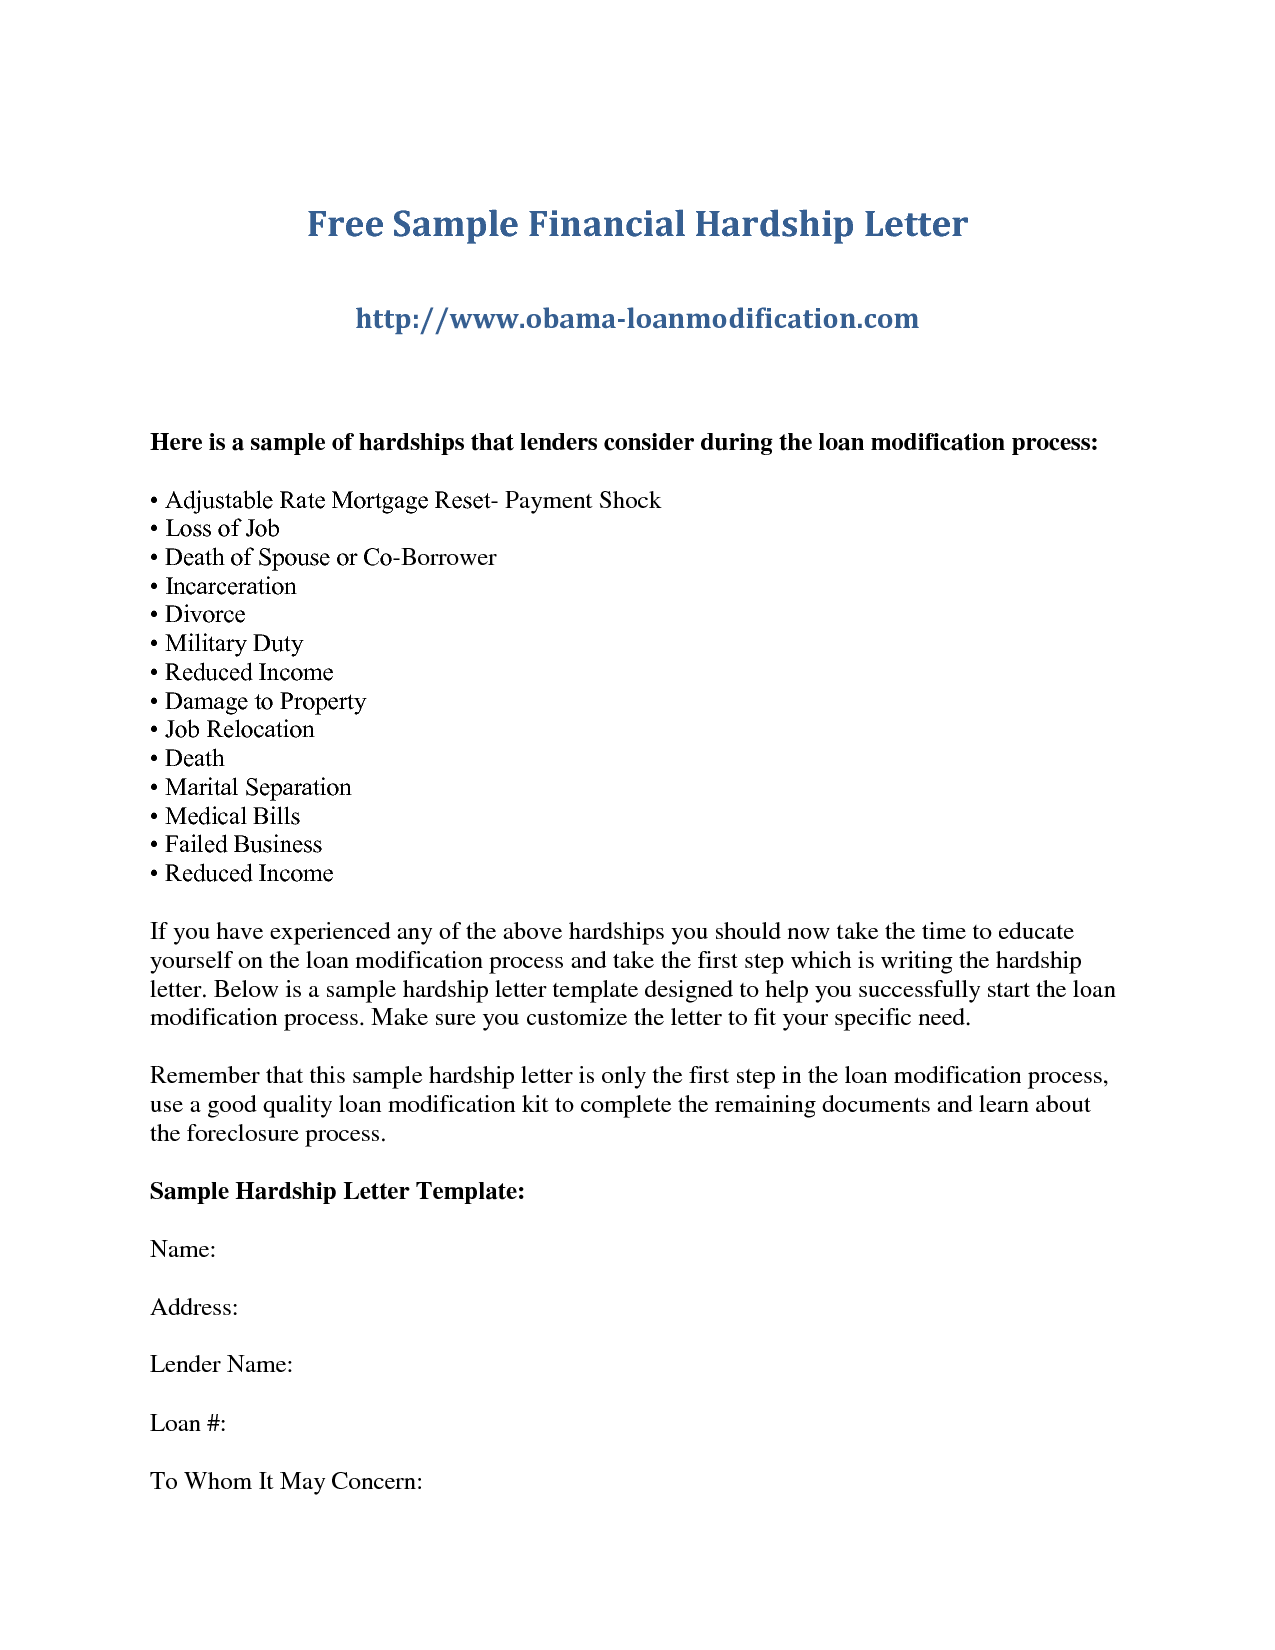 How to write a letter to a creditor for hardship google search how to write a letter to a creditor for hardship google search spiritdancerdesigns Images